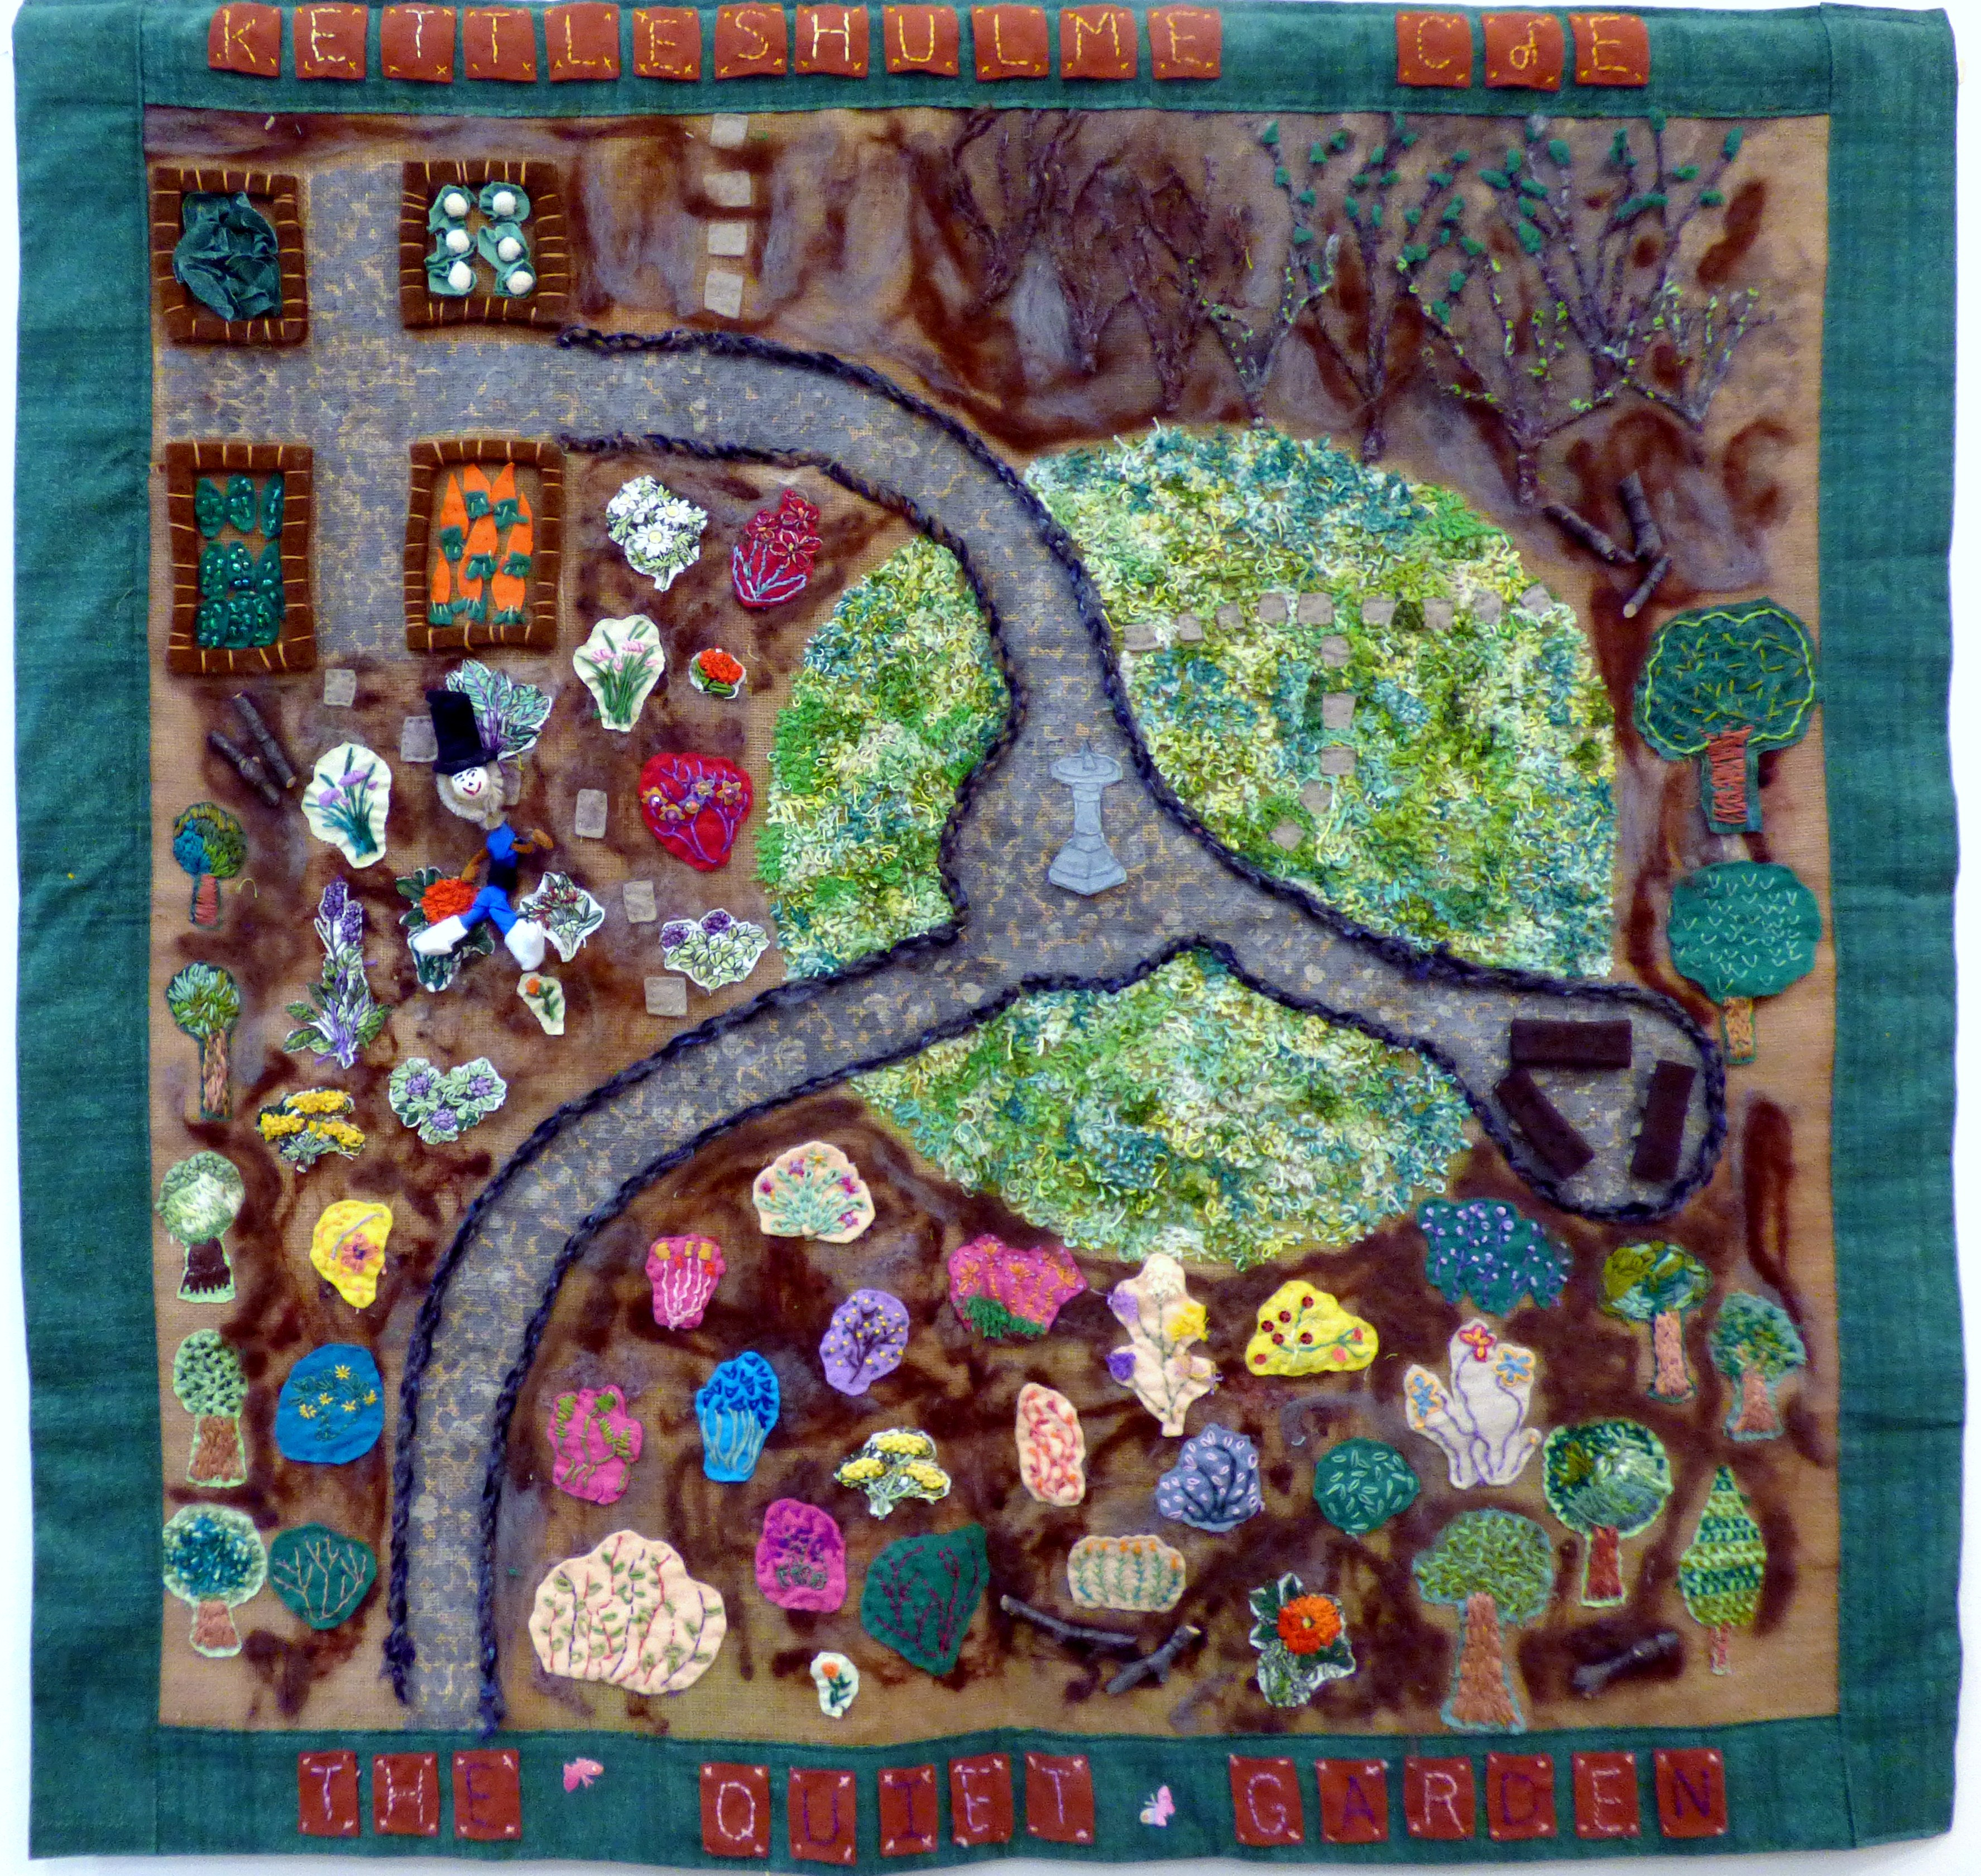 KETTLESHULME SCHOOL GARDEN, Group Project by a school sewing group led by members of Macclesfield Embroiderers' Guild